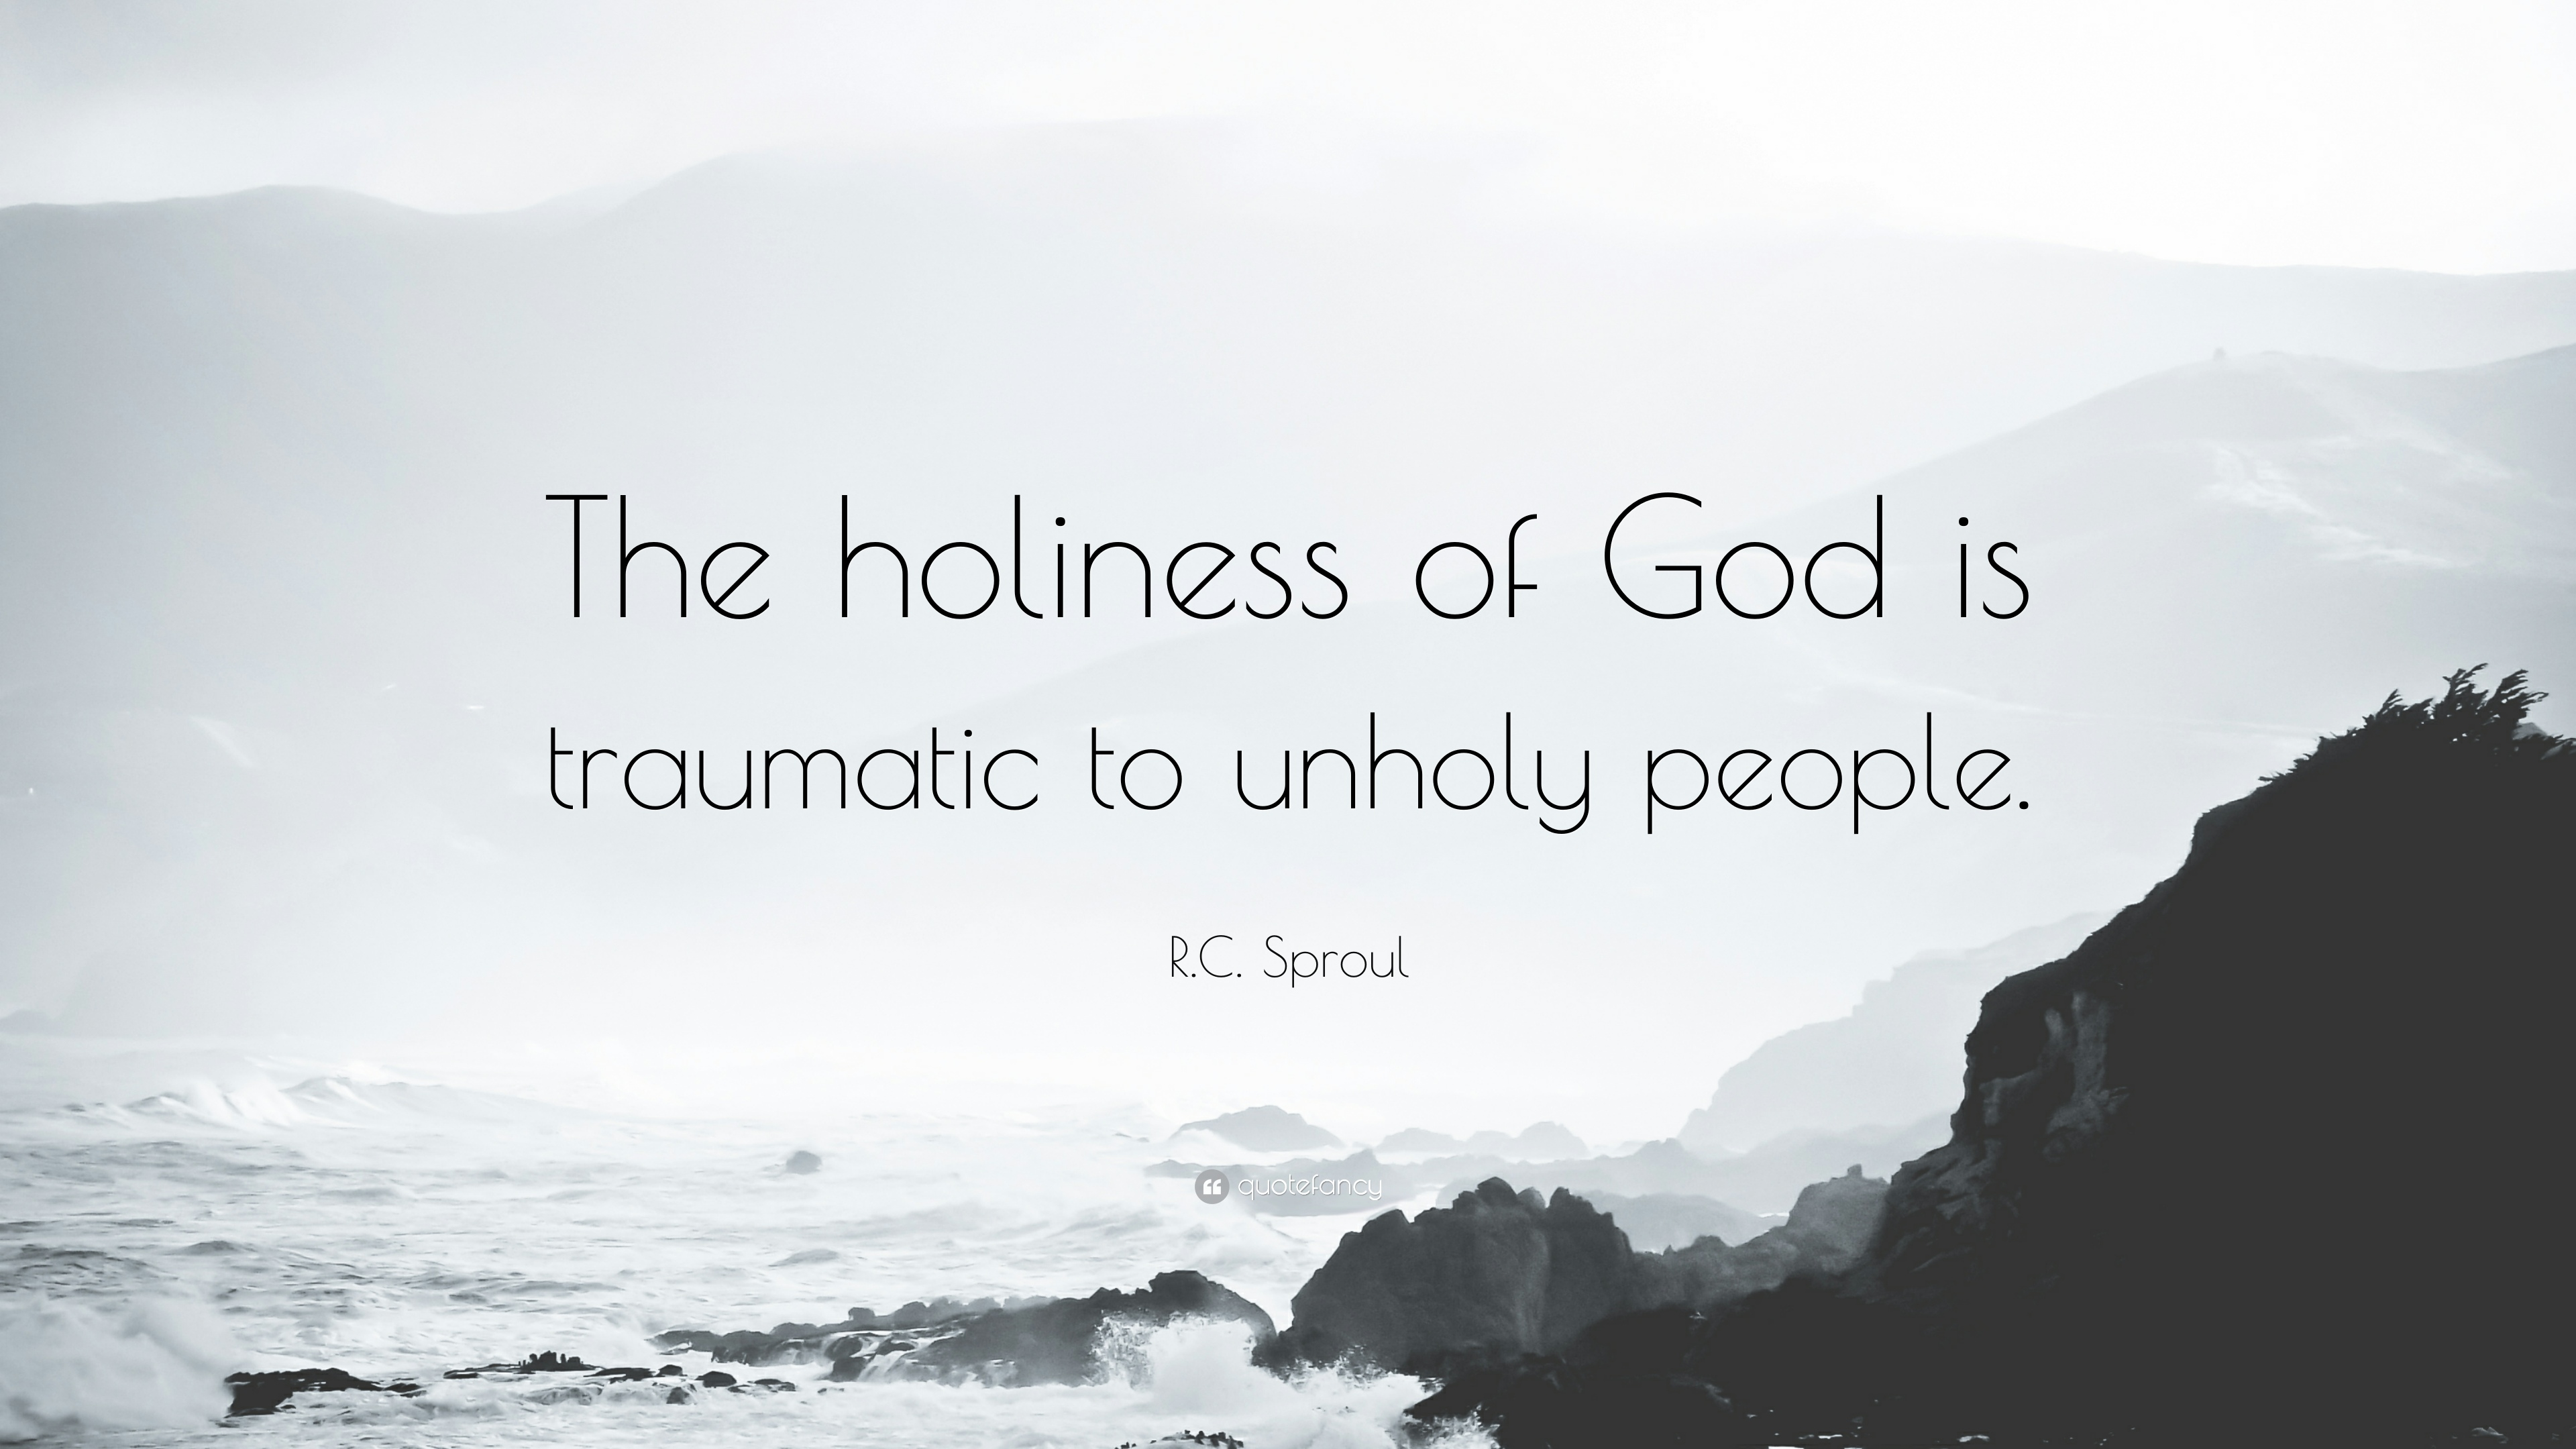 R C Sproul Quote The Holiness Of God Is Traumatic To Unholy People 9 Wallpapers Quotefancy